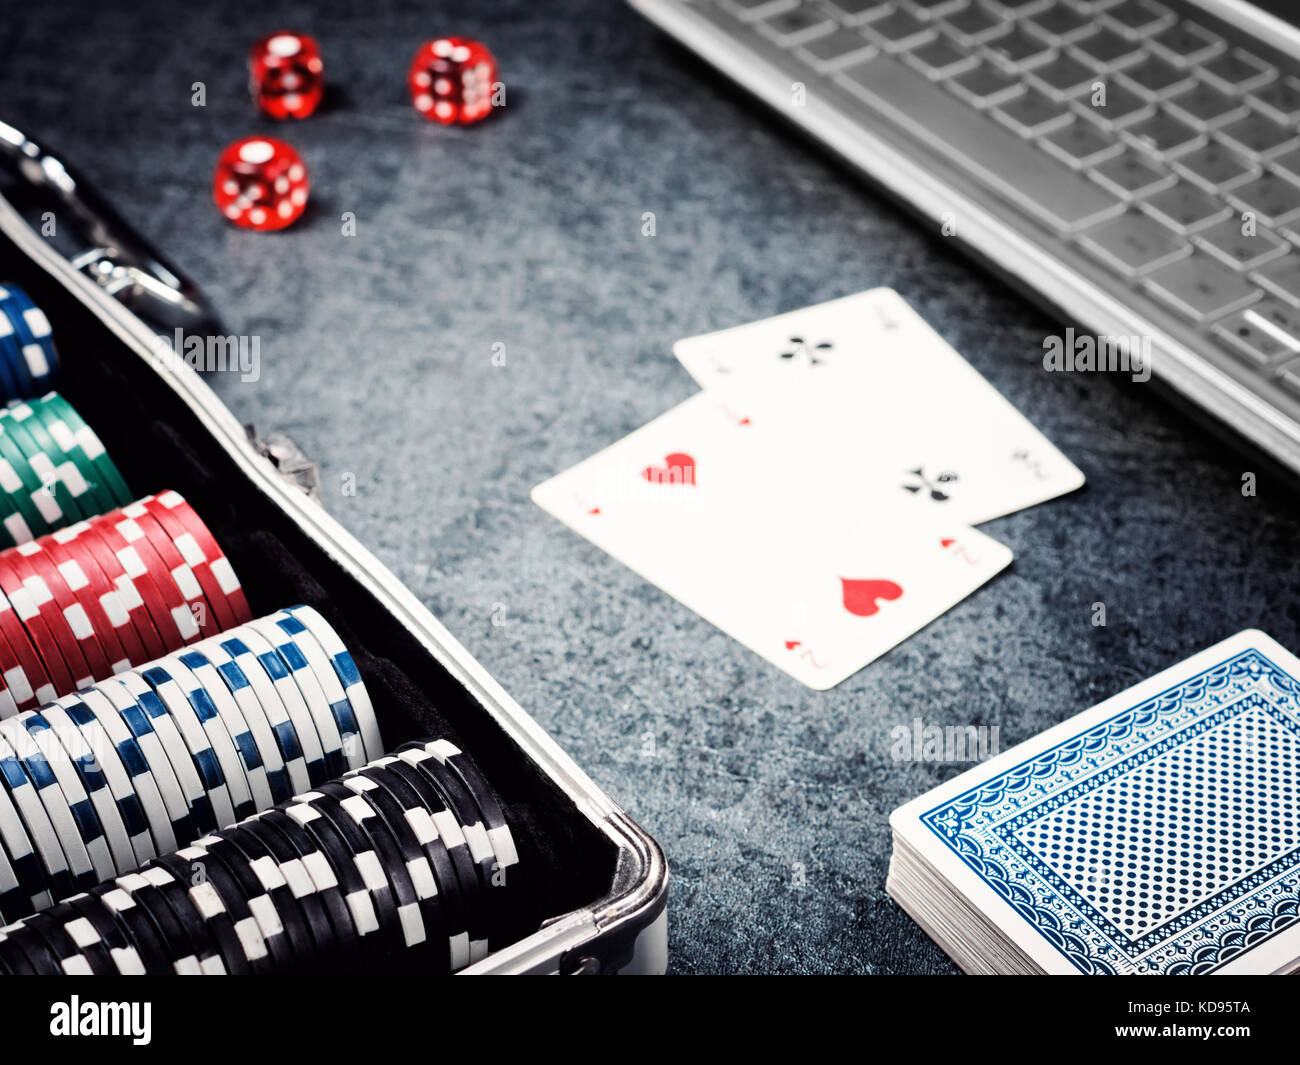 Set of poker chip or counter with card, dice in metal case and computer. Stock Photo